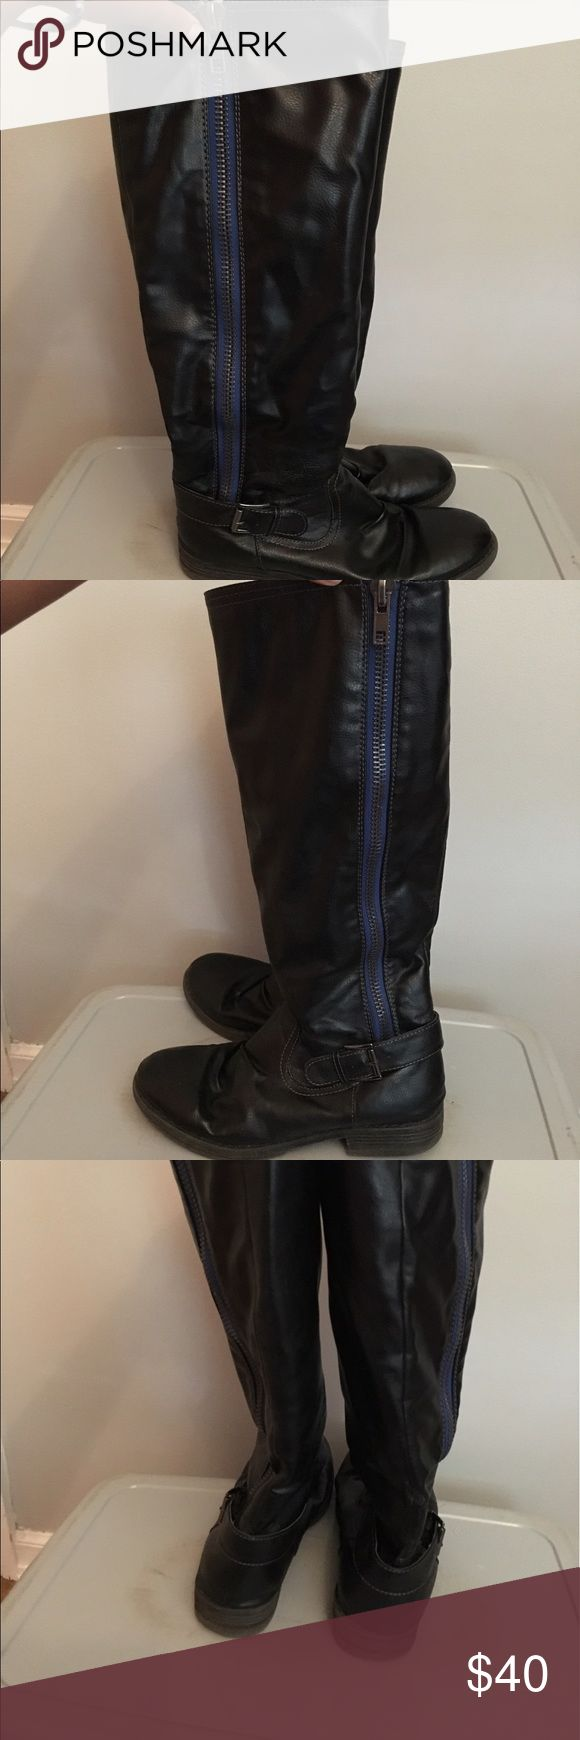 Steve Madden Black Boots steve madden tall boots. good condition. has zipper on the side with a blue design. small little heel Steve Madden Shoes Heeled Boots